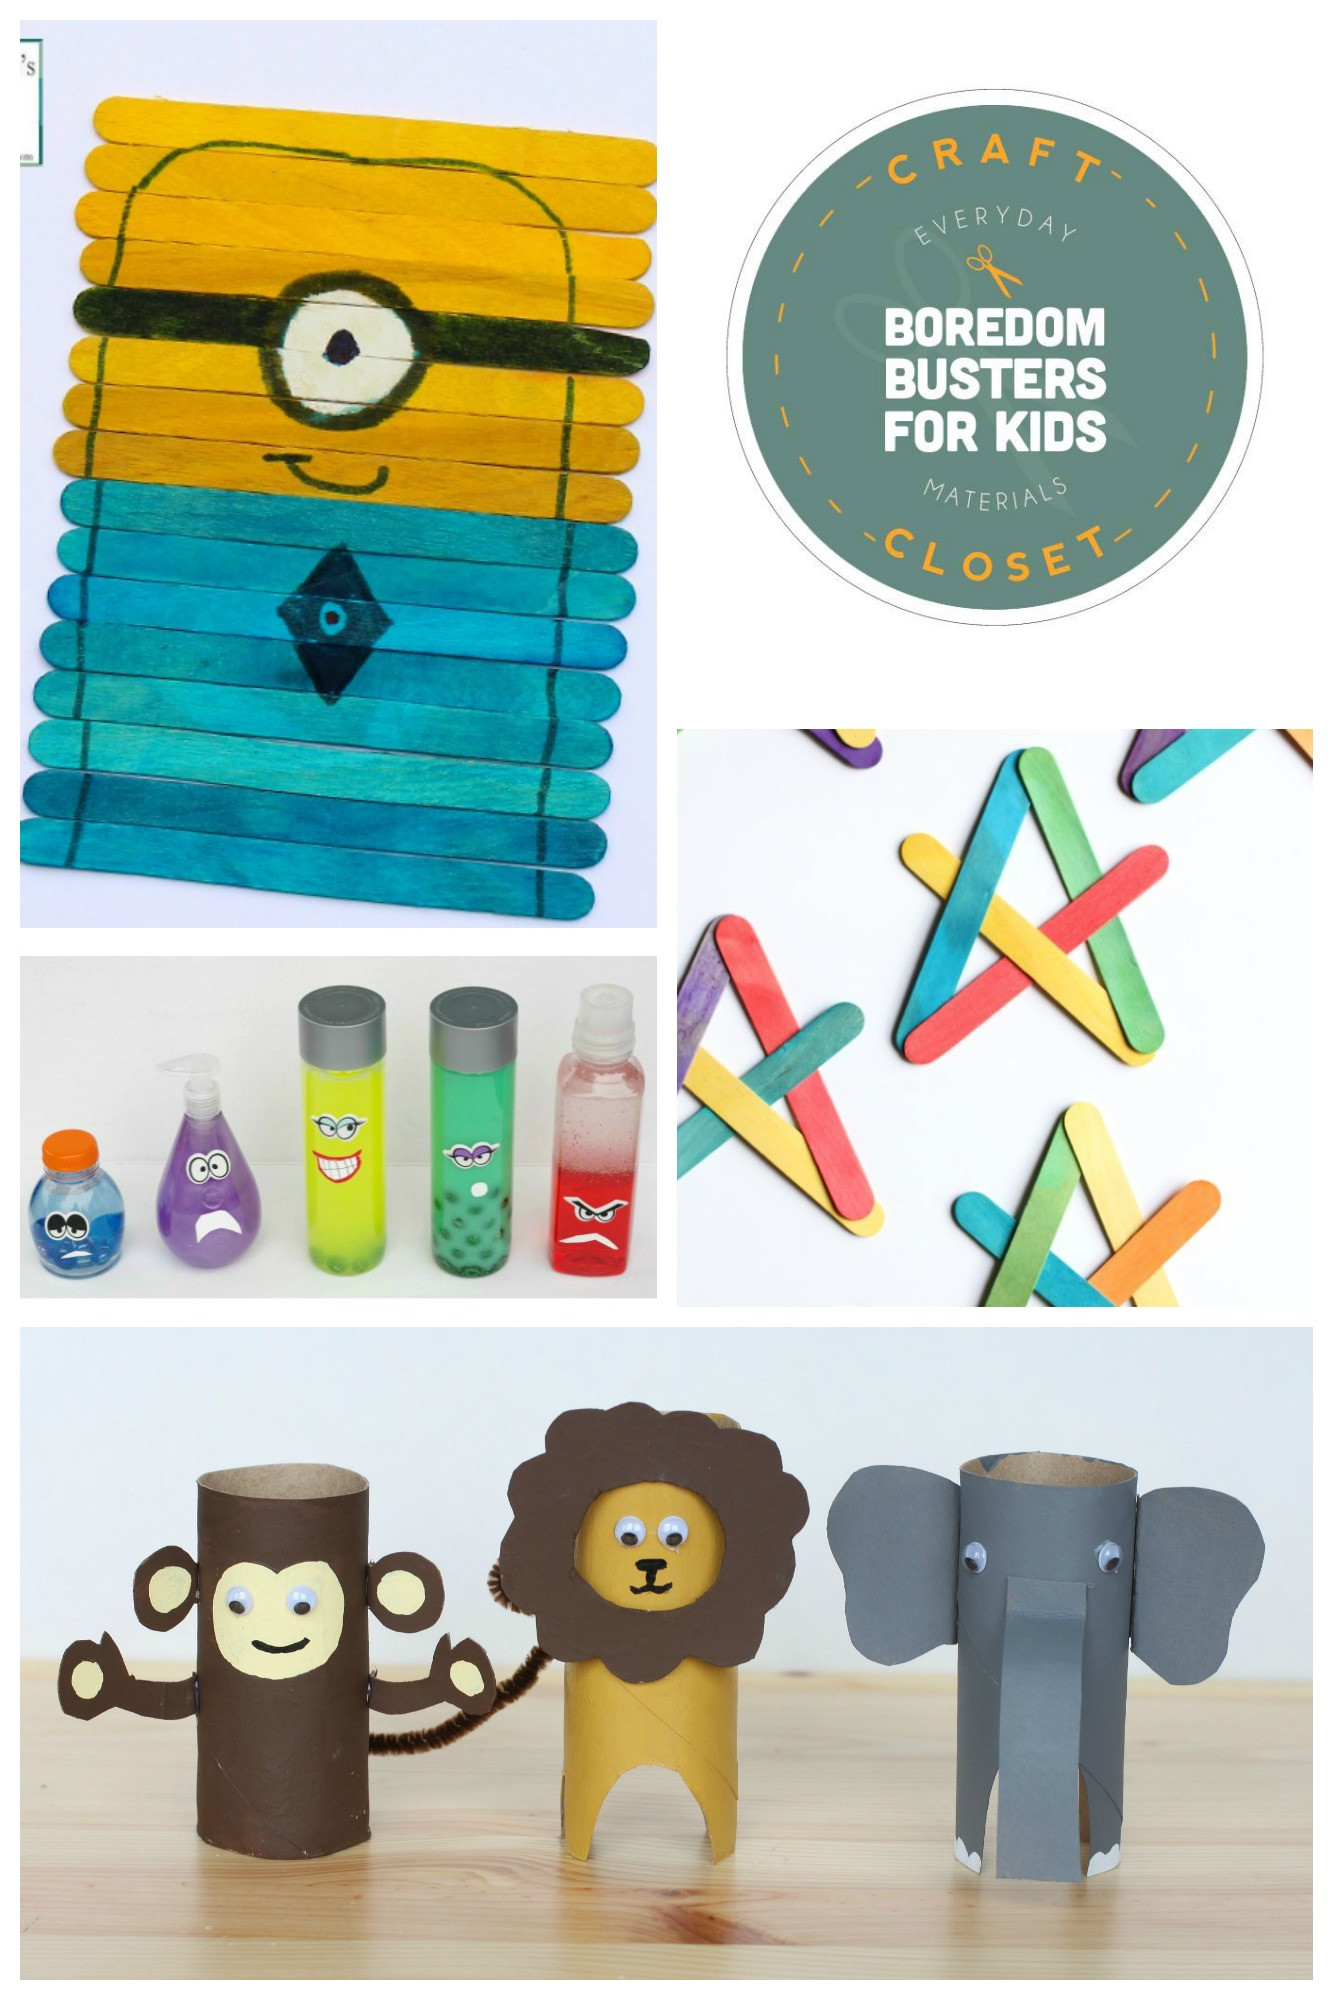 Best ideas about Crafts To Do At Home For Kids . Save or Pin 25 Crafts and Activities for Kids Using Everyday Materials Now.